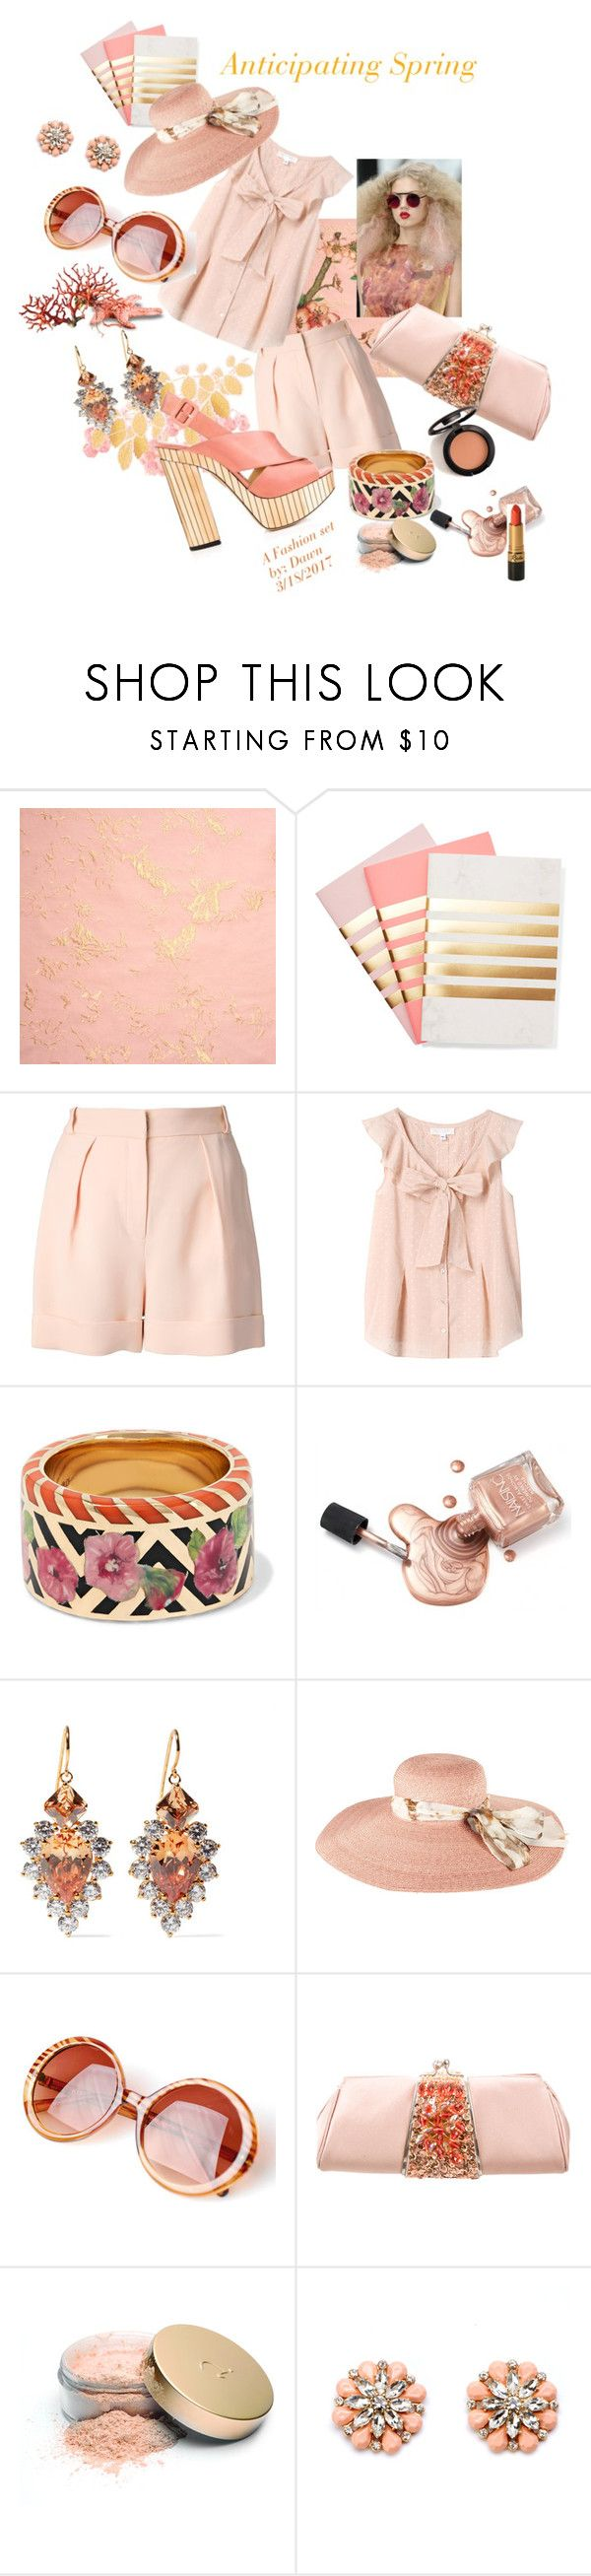 """SPRING"" by dawn-lindenberg ❤ liked on Polyvore featuring StudioSarah, Lala Berlin, Alice Cicolini, Topshop Unique, Noir Jewelry, Paul Smith, Judith Leiber, Jane Iredale and Oxford"